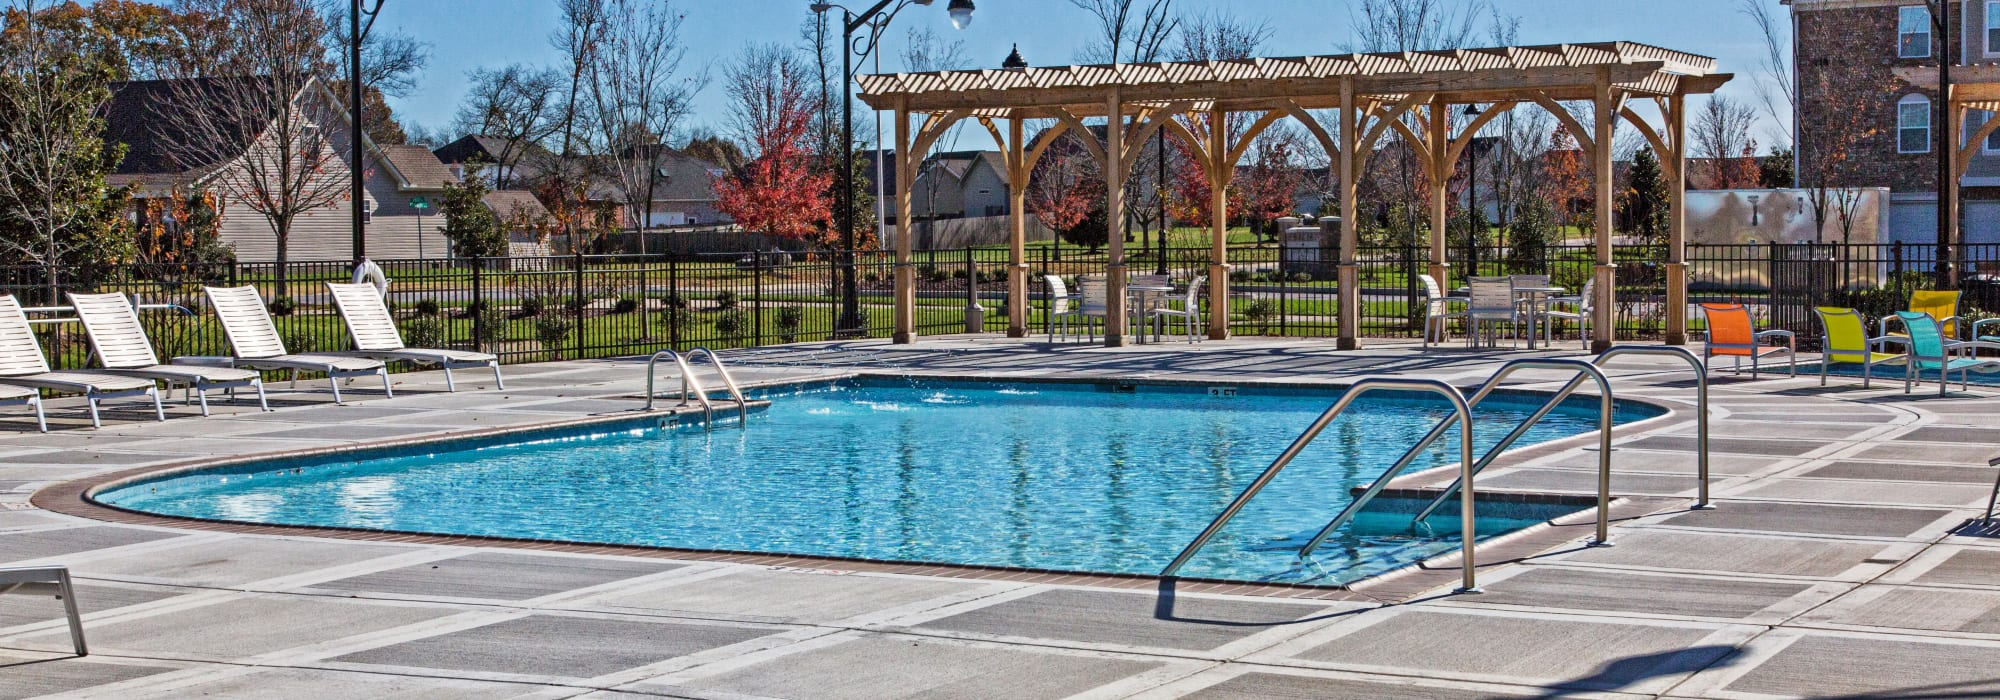 Apartments at Arbor Brook in Murfreesboro, Tennessee